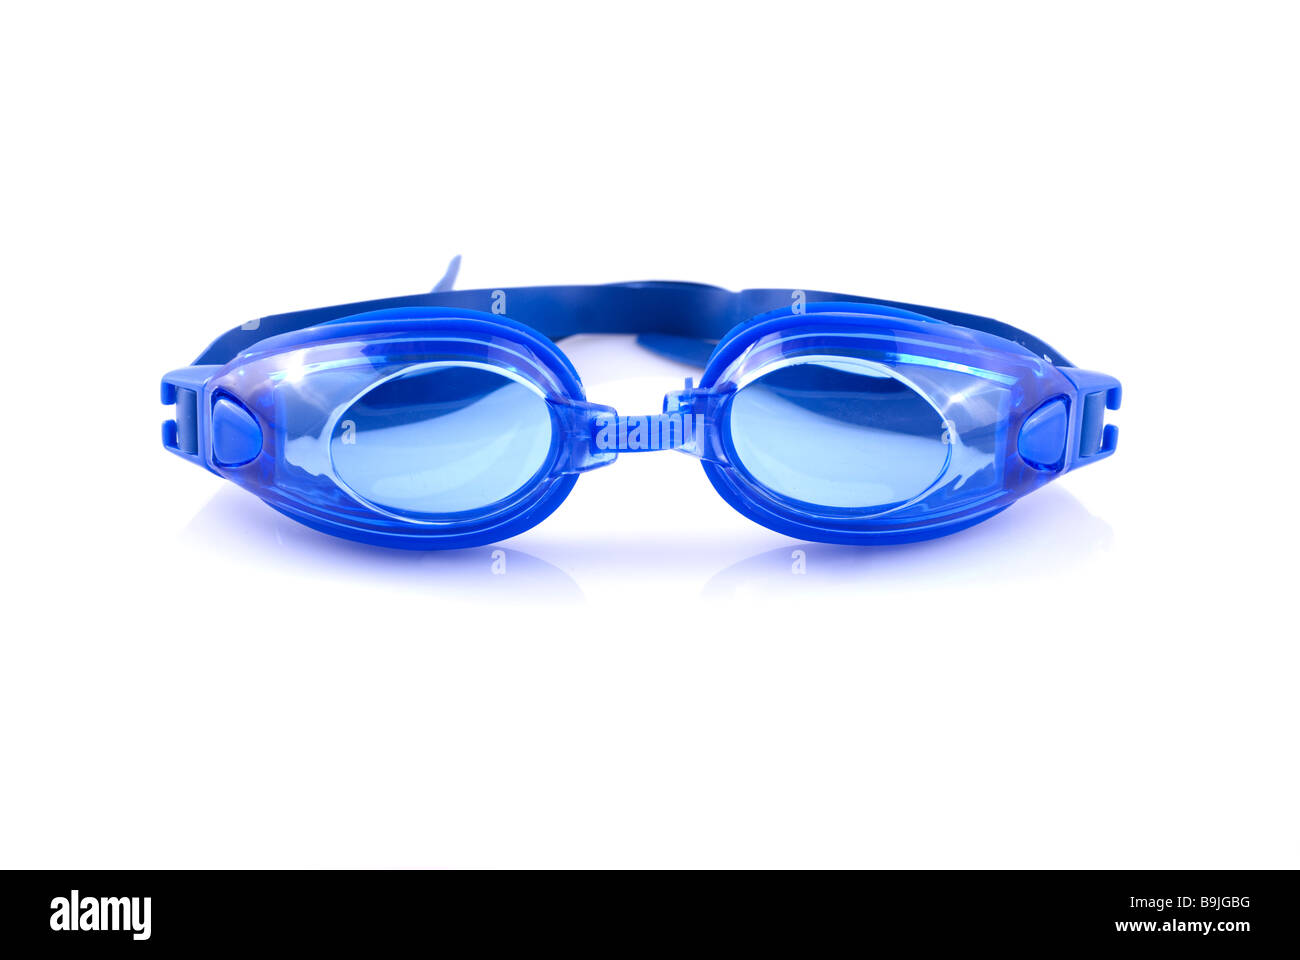 f73f282d572 Safety Goggles Cut Out Stock Photos   Safety Goggles Cut Out Stock ...